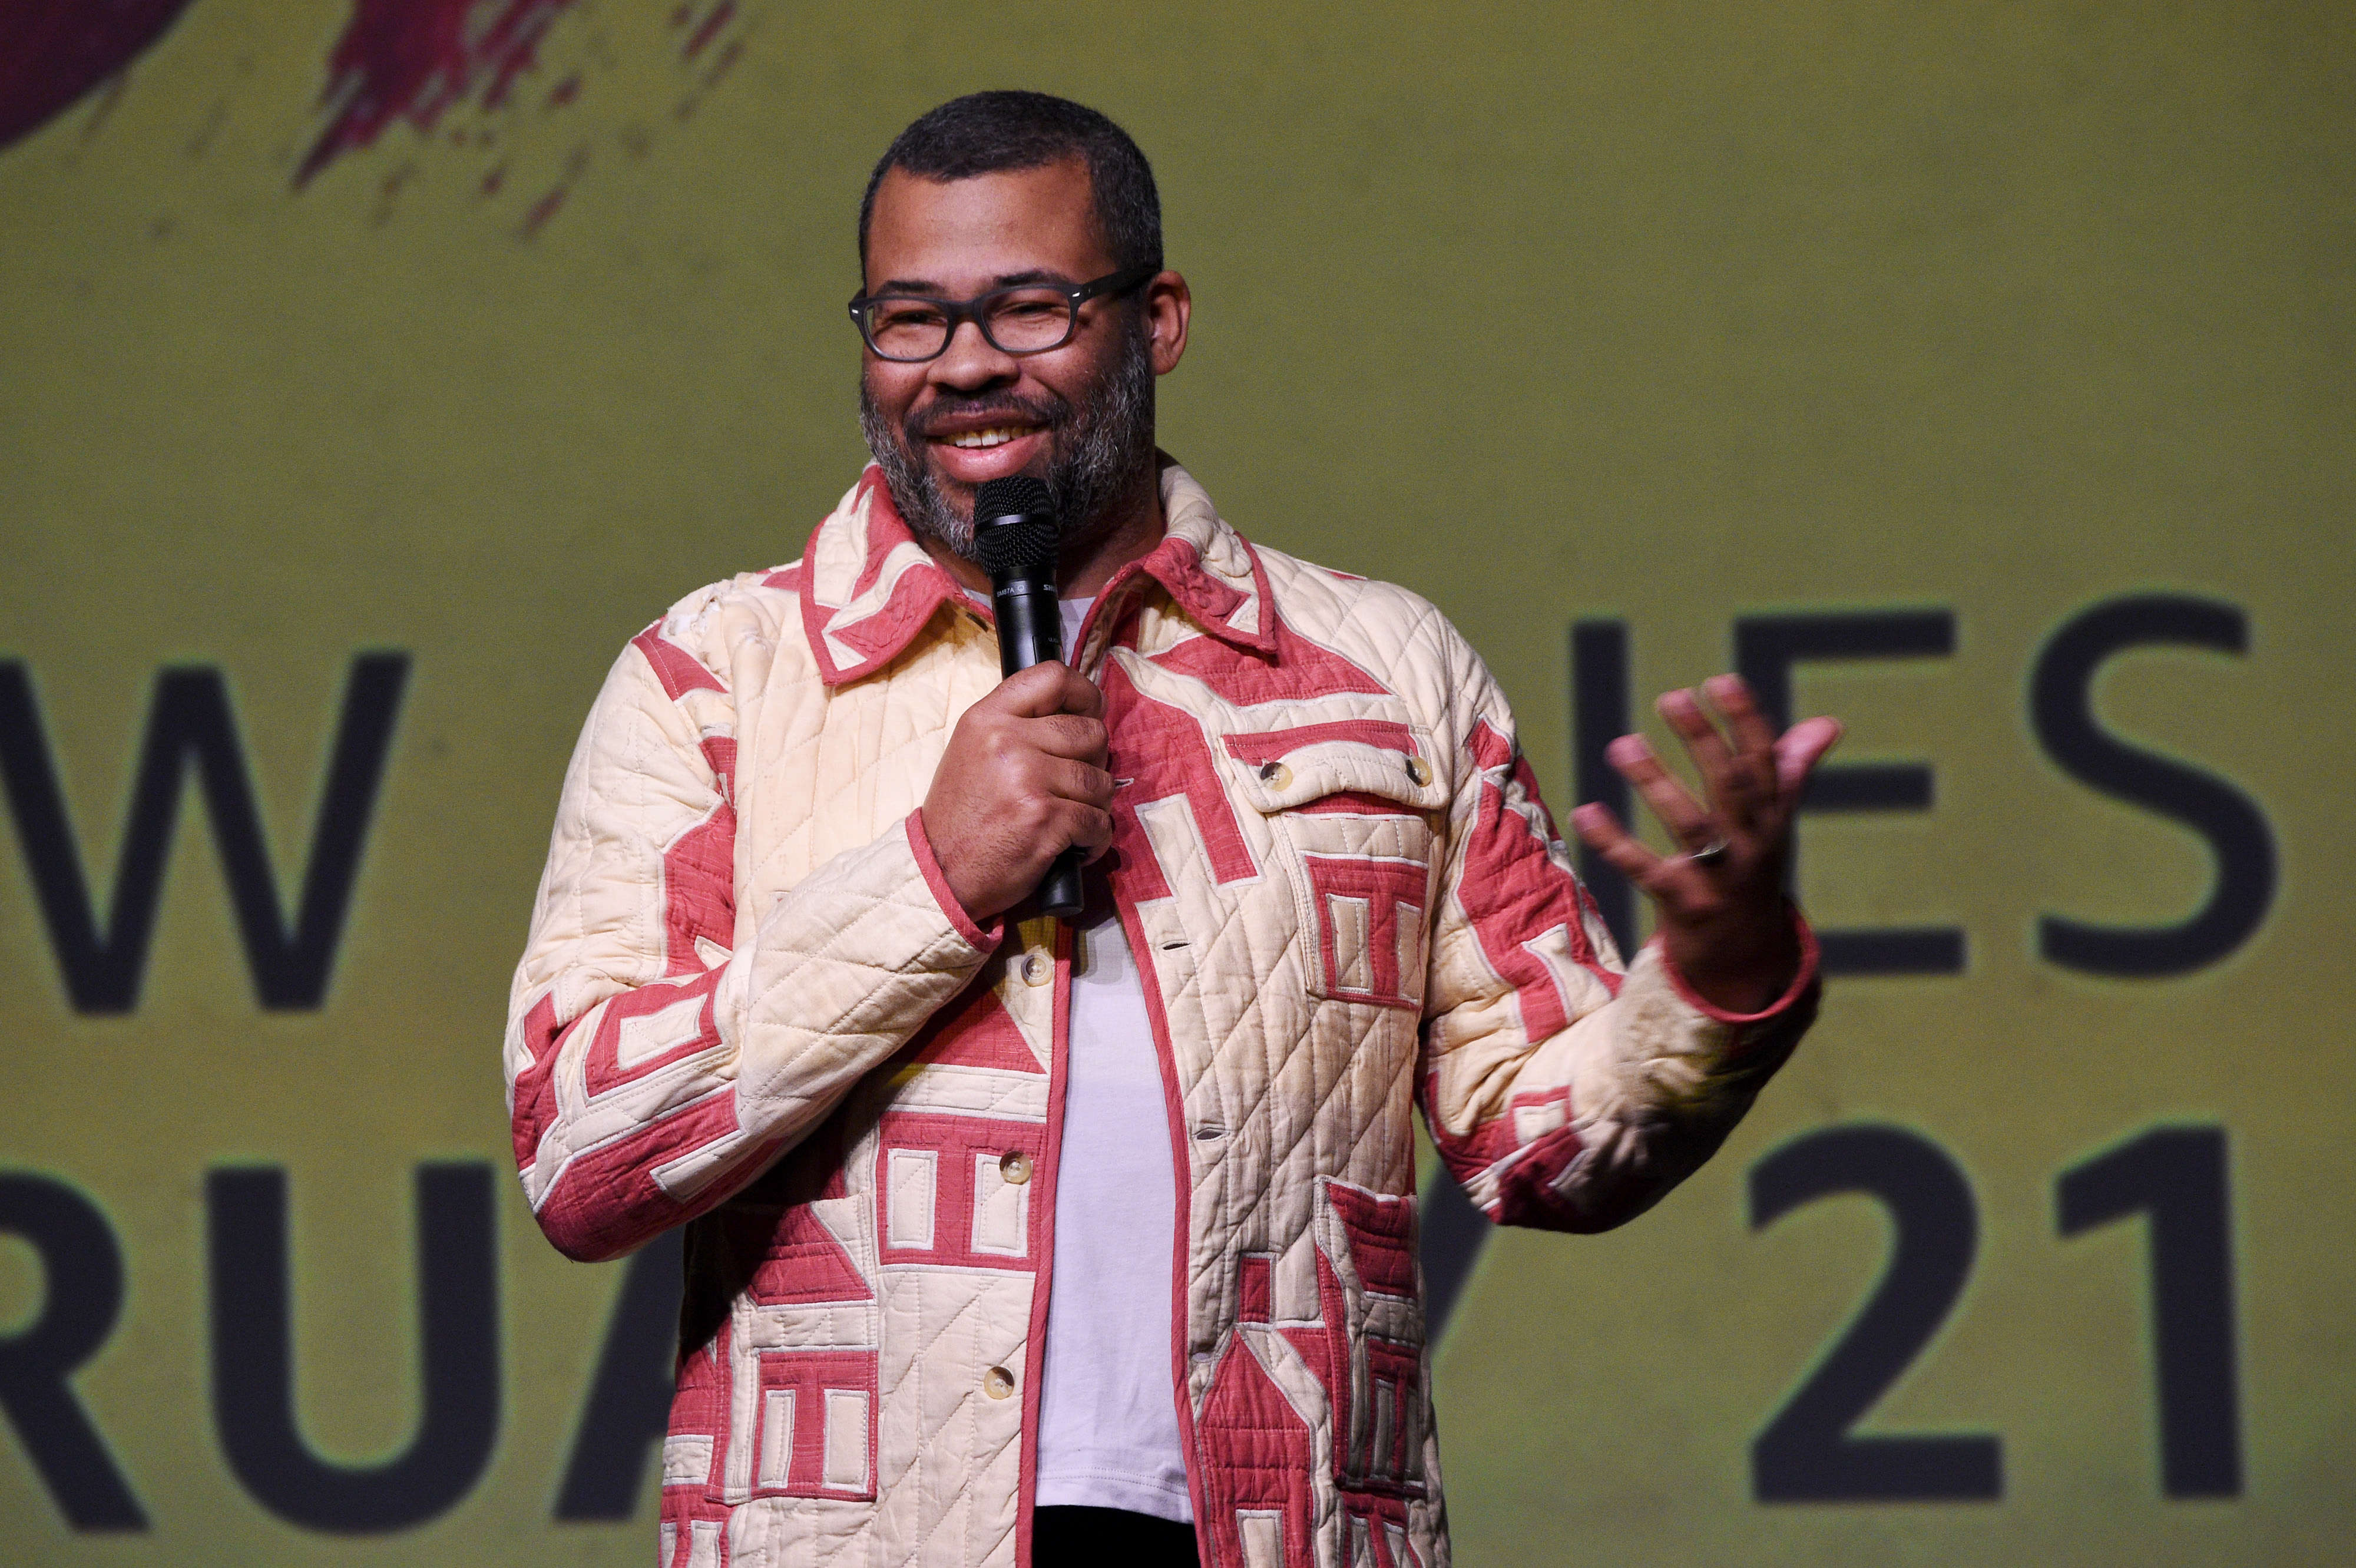 'Nope': Jordan Peele reveals one-word title and poster for next film, promises a 'new terror'